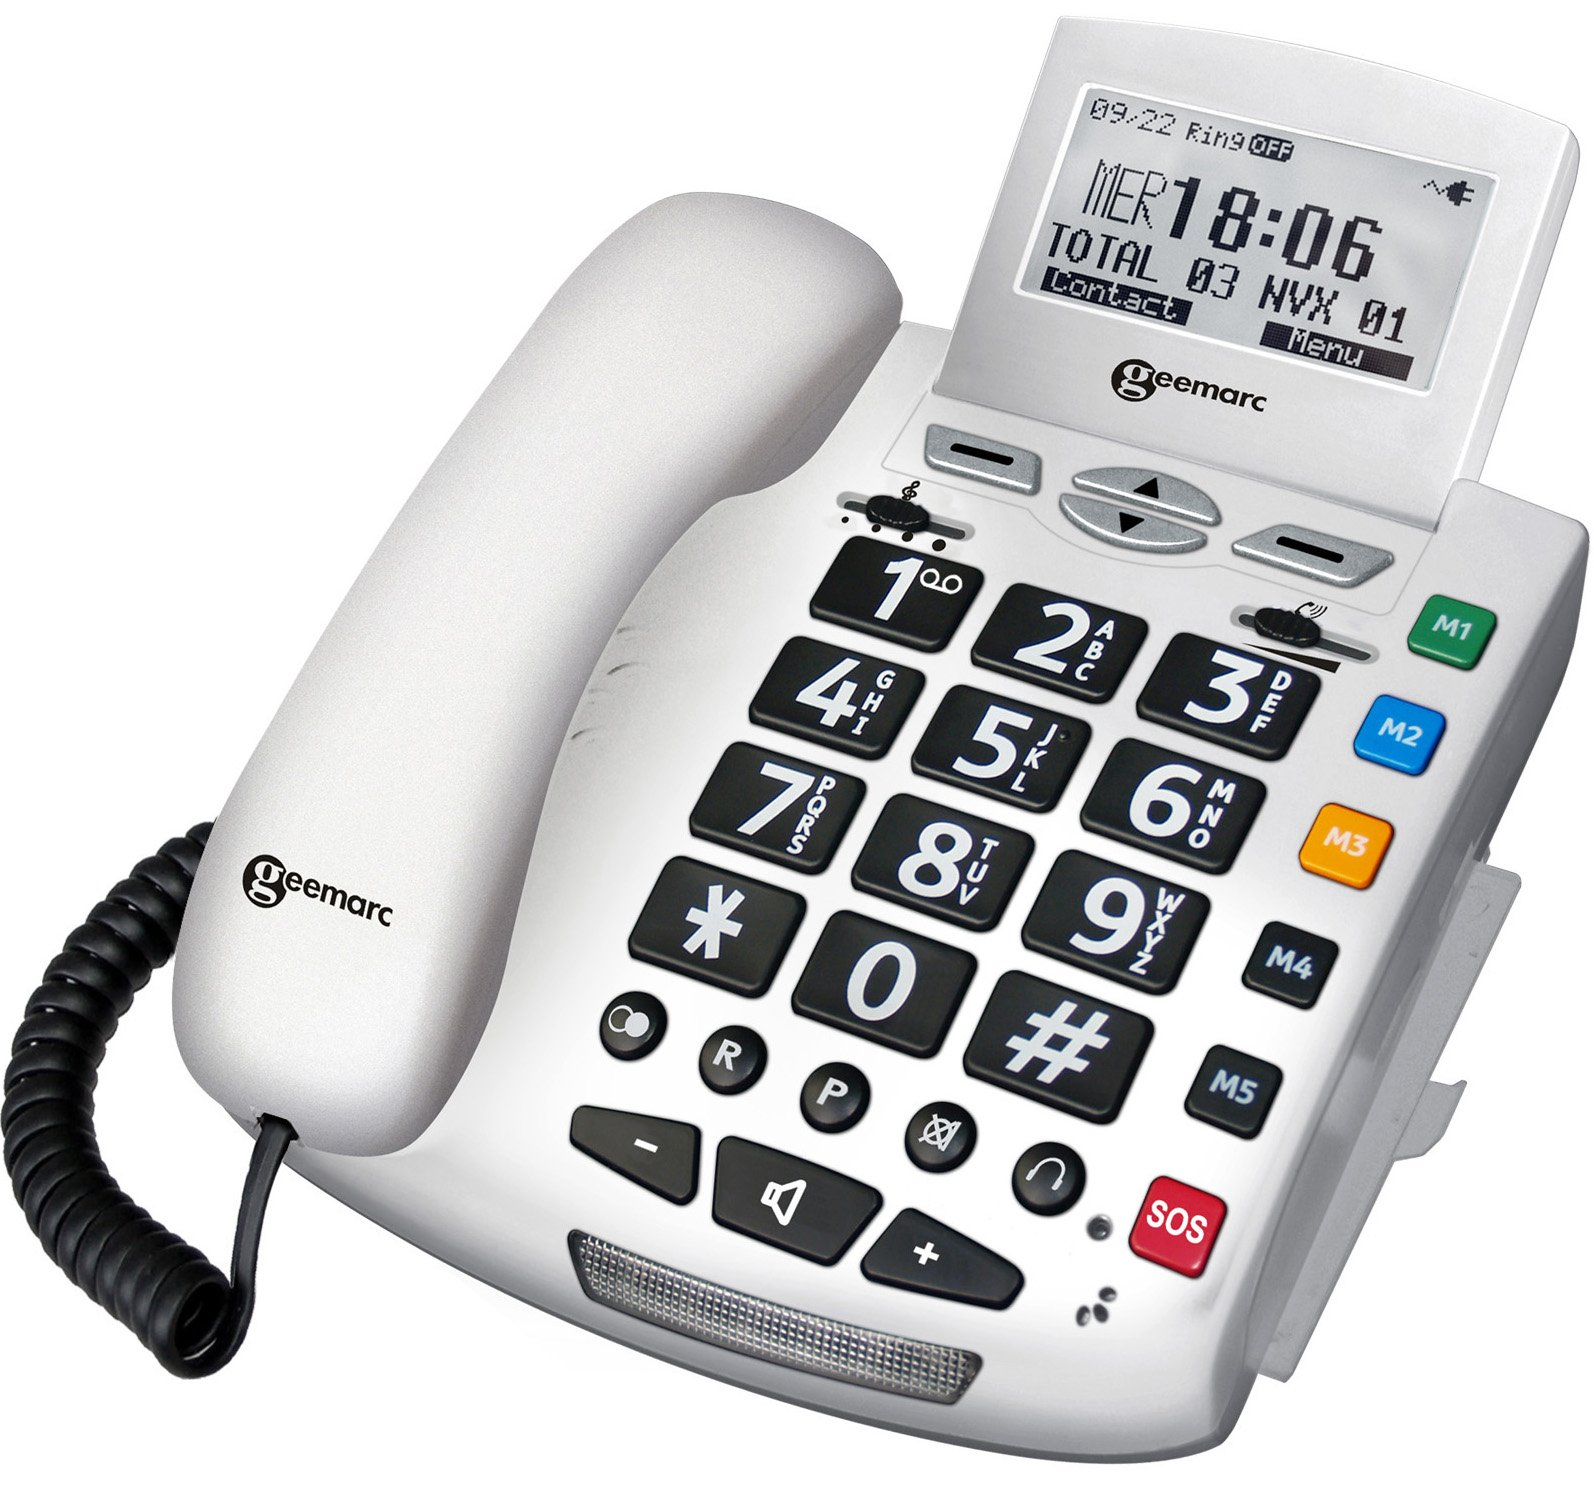 Geemarc Serenities Emergency Response Telephone with Remote Control - White